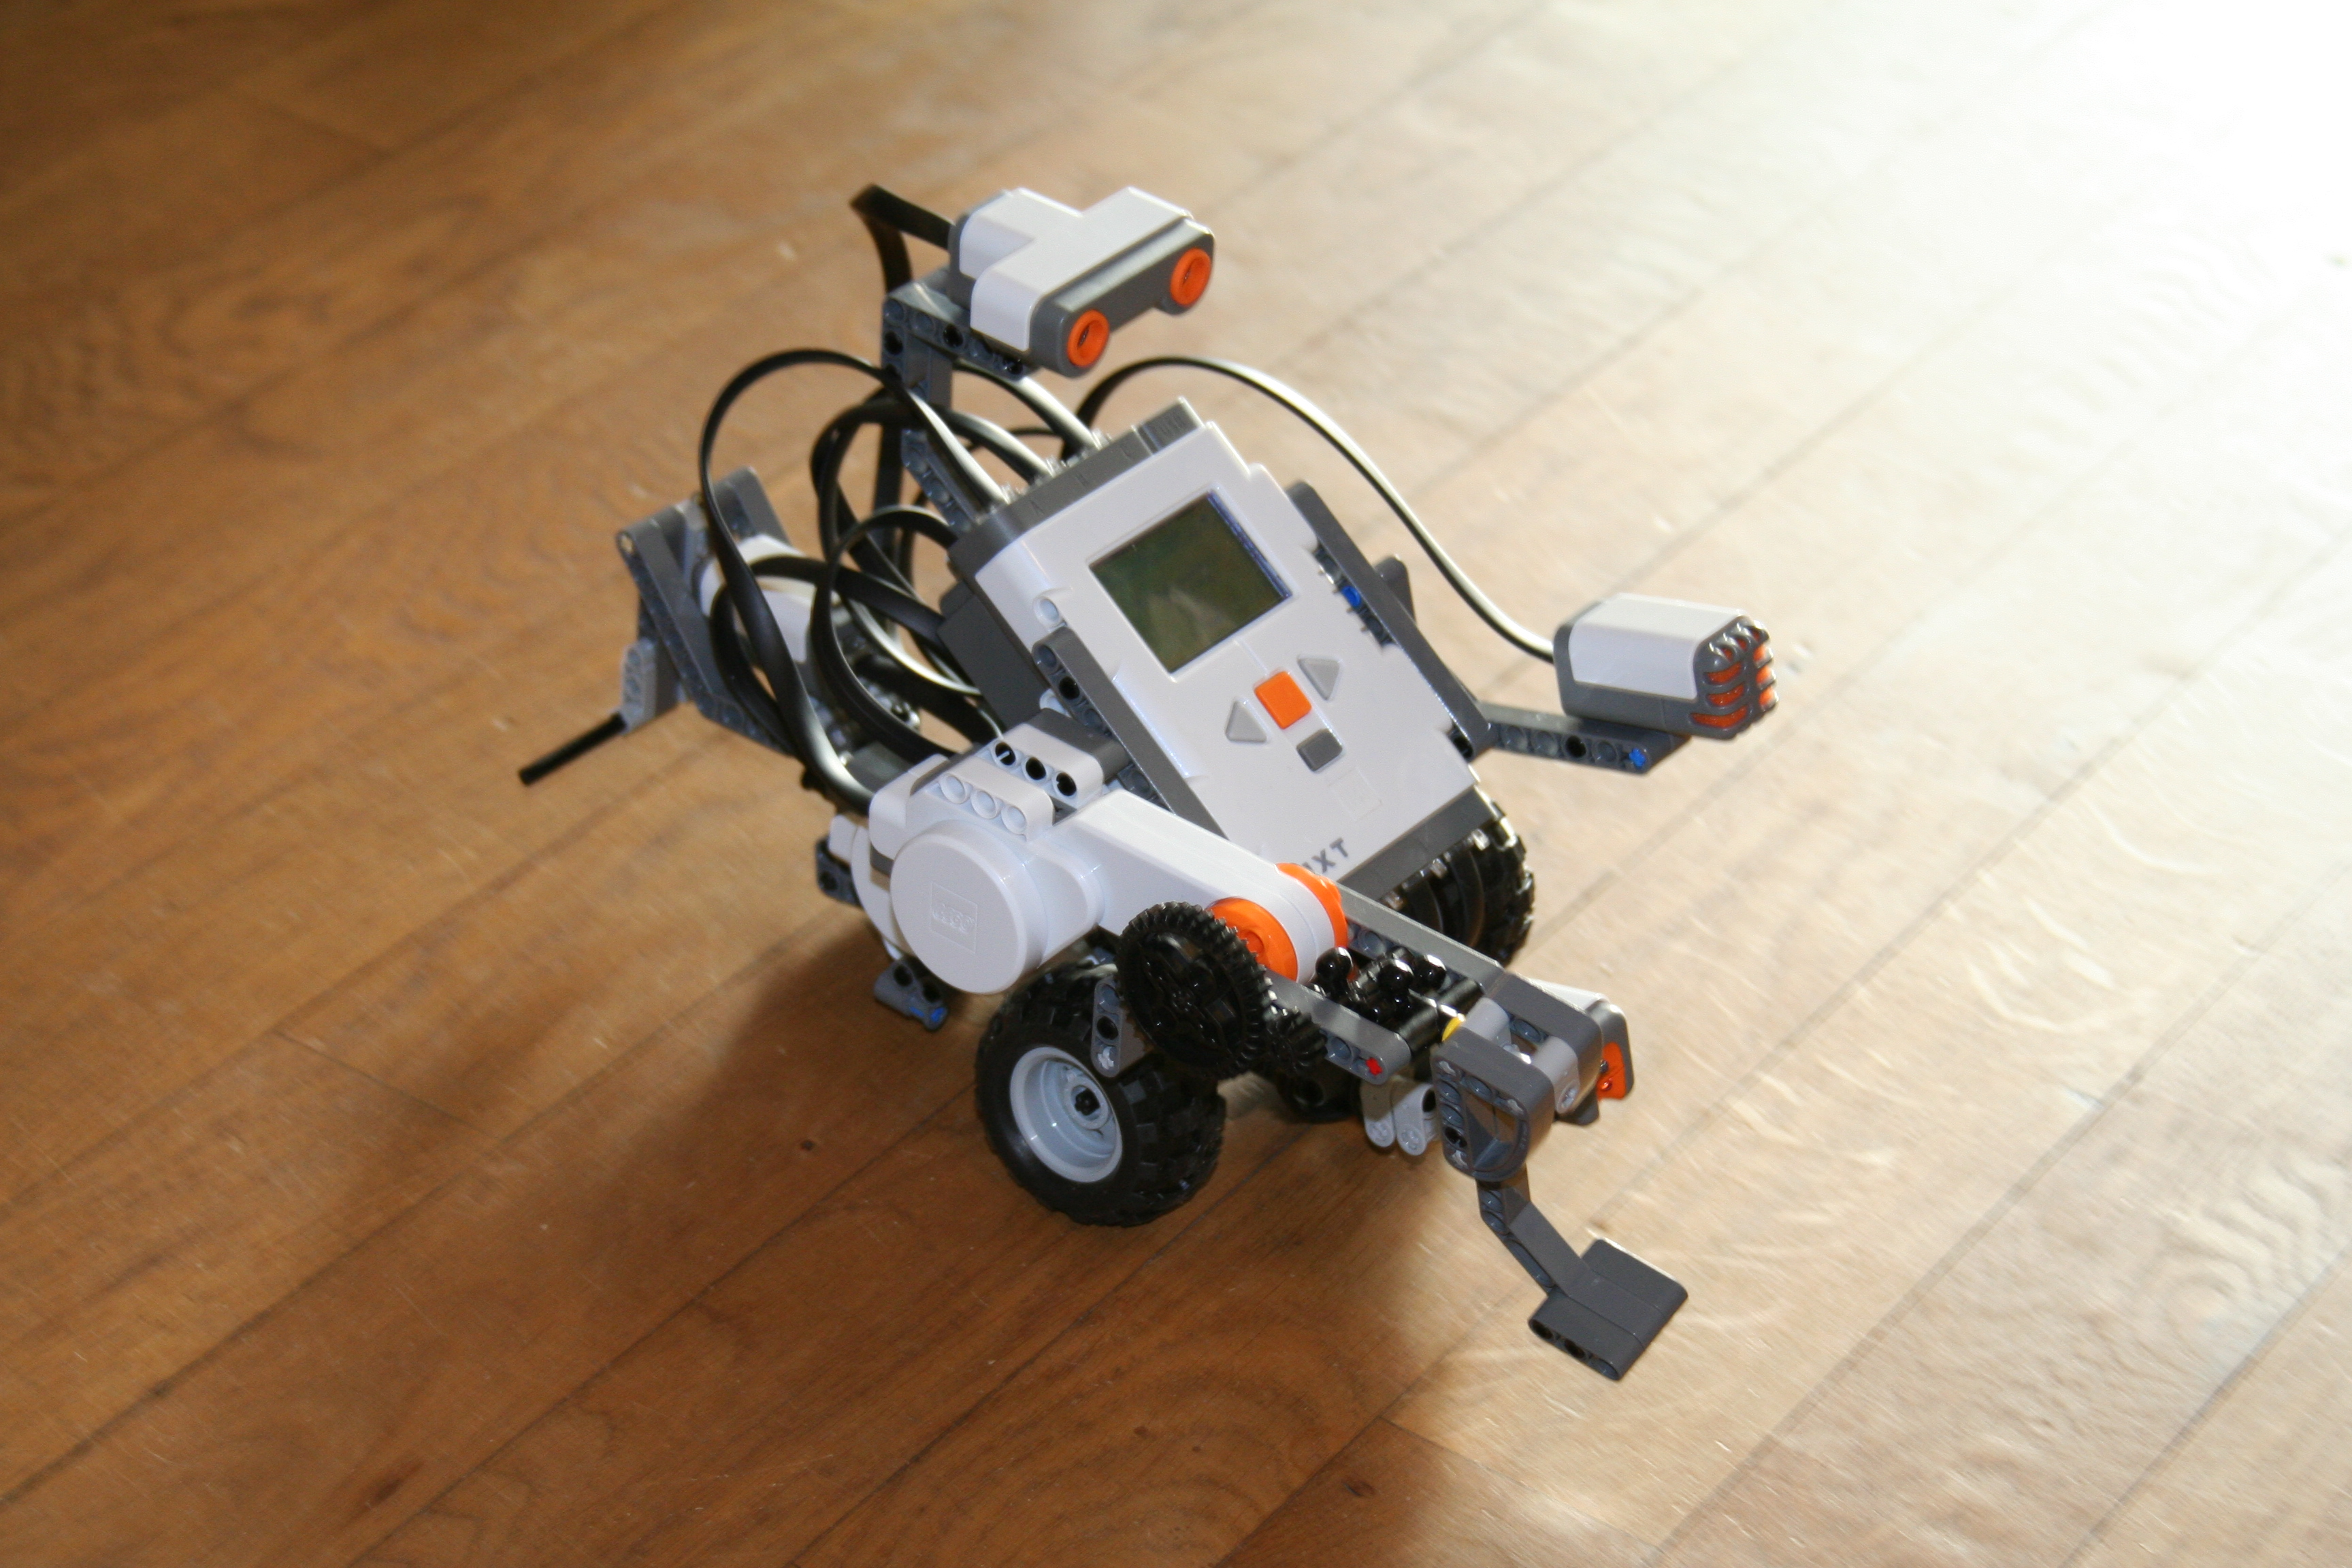 Camera Lego Nxt : File lego mindstorms nxt fll g wikimedia commons